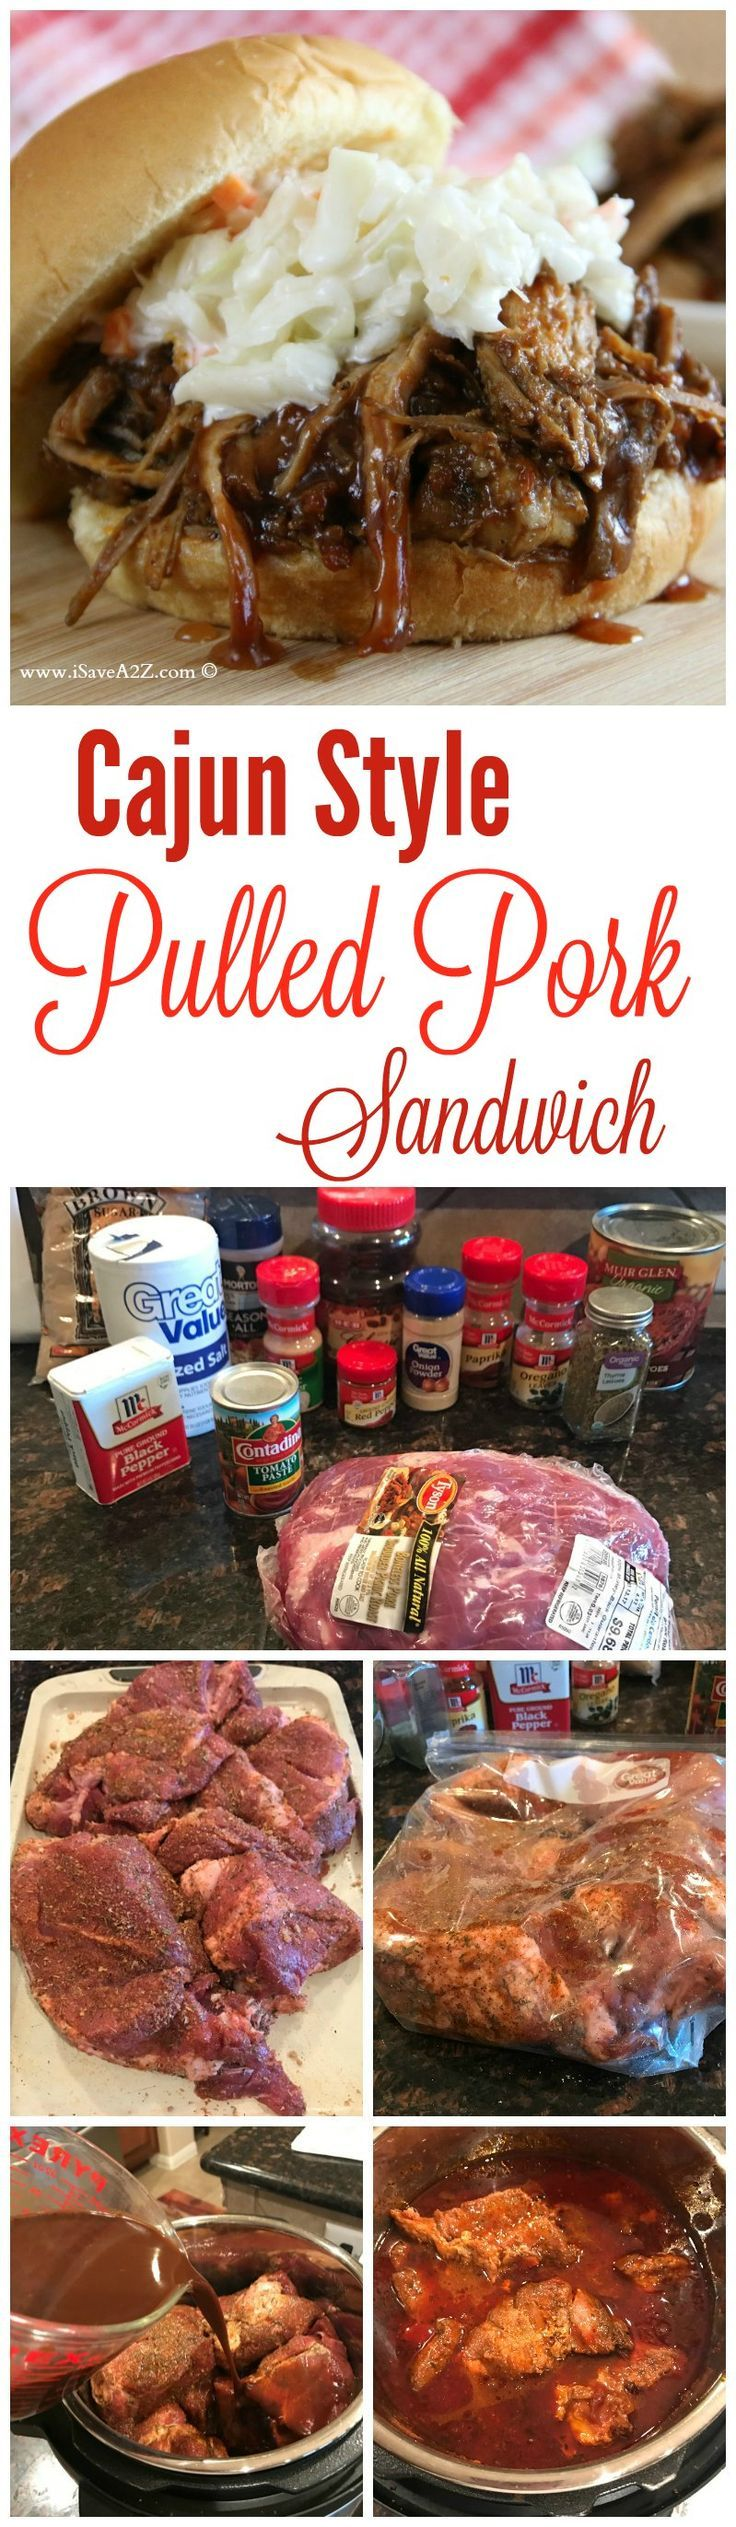 Pressure Cooker Cajun Pork Roast Recipe - I can see why the Instant Pot Pressure Cooker is so popular!